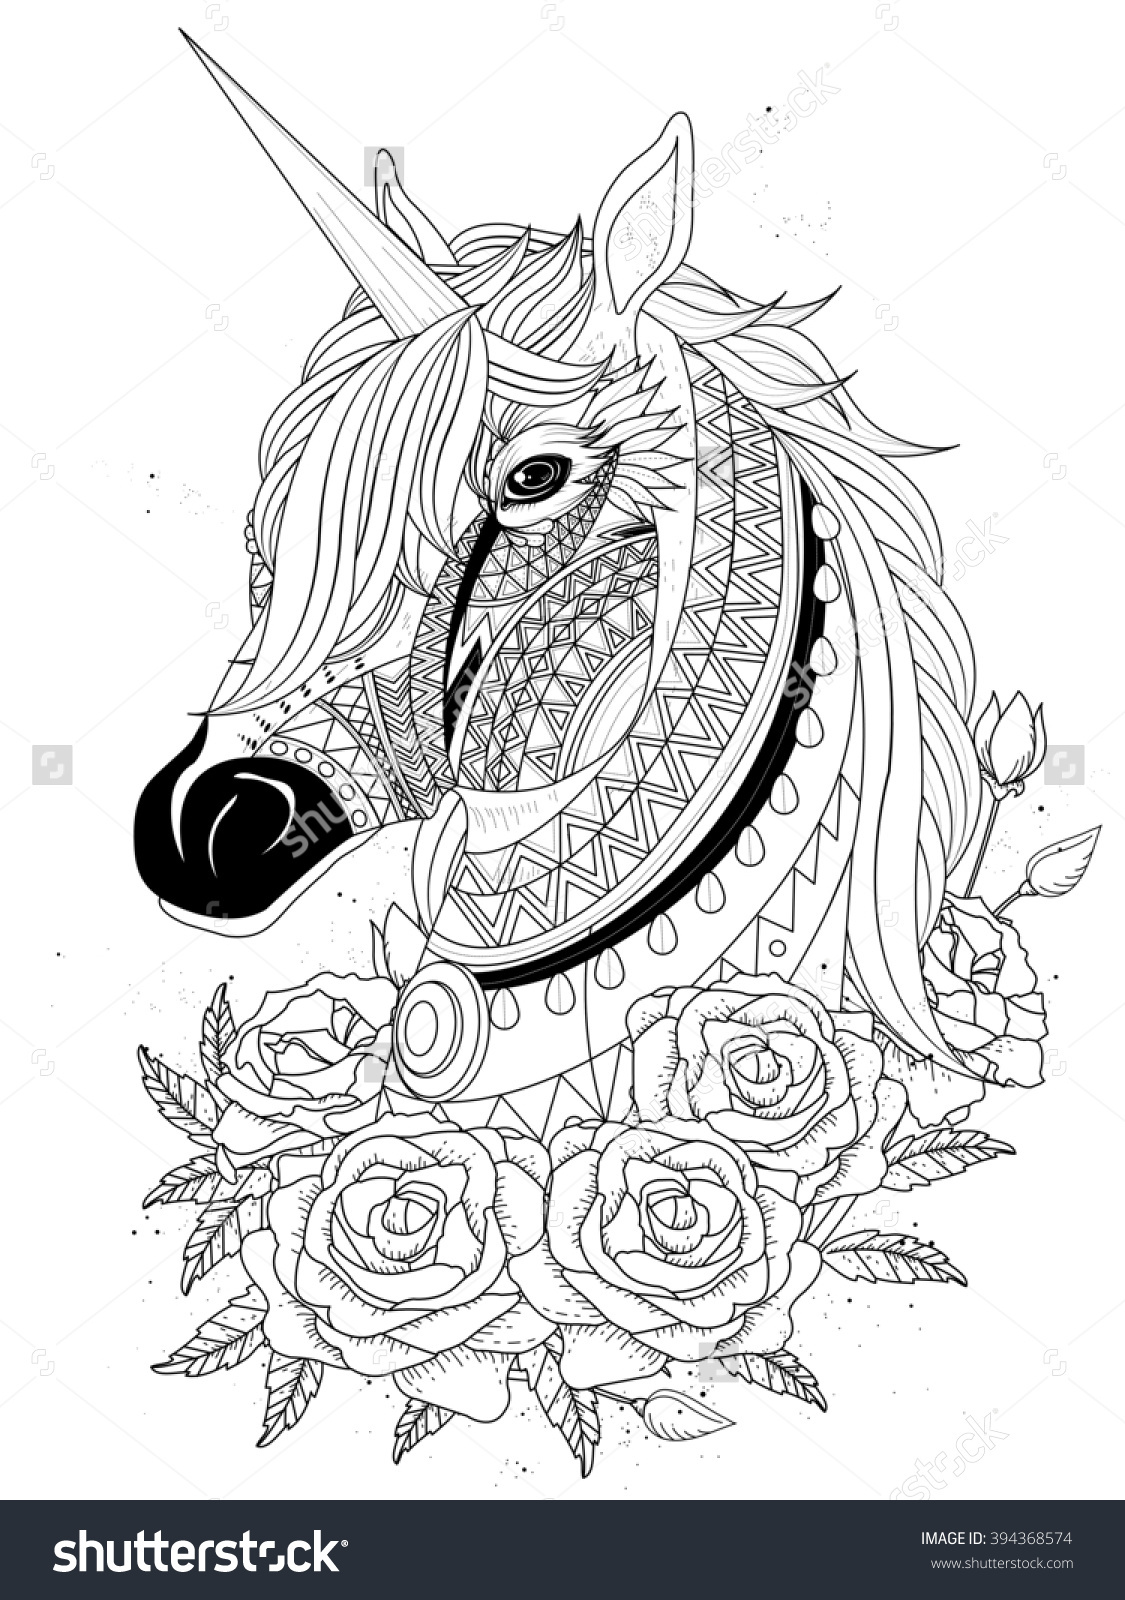 Free printable coloring pages unicorn - Fantastic Adult Coloring Pages Huge Christmas Coloring Pages Round Halloween Coloring Pages Disney Coloring Pages Old Download Image Free Printable